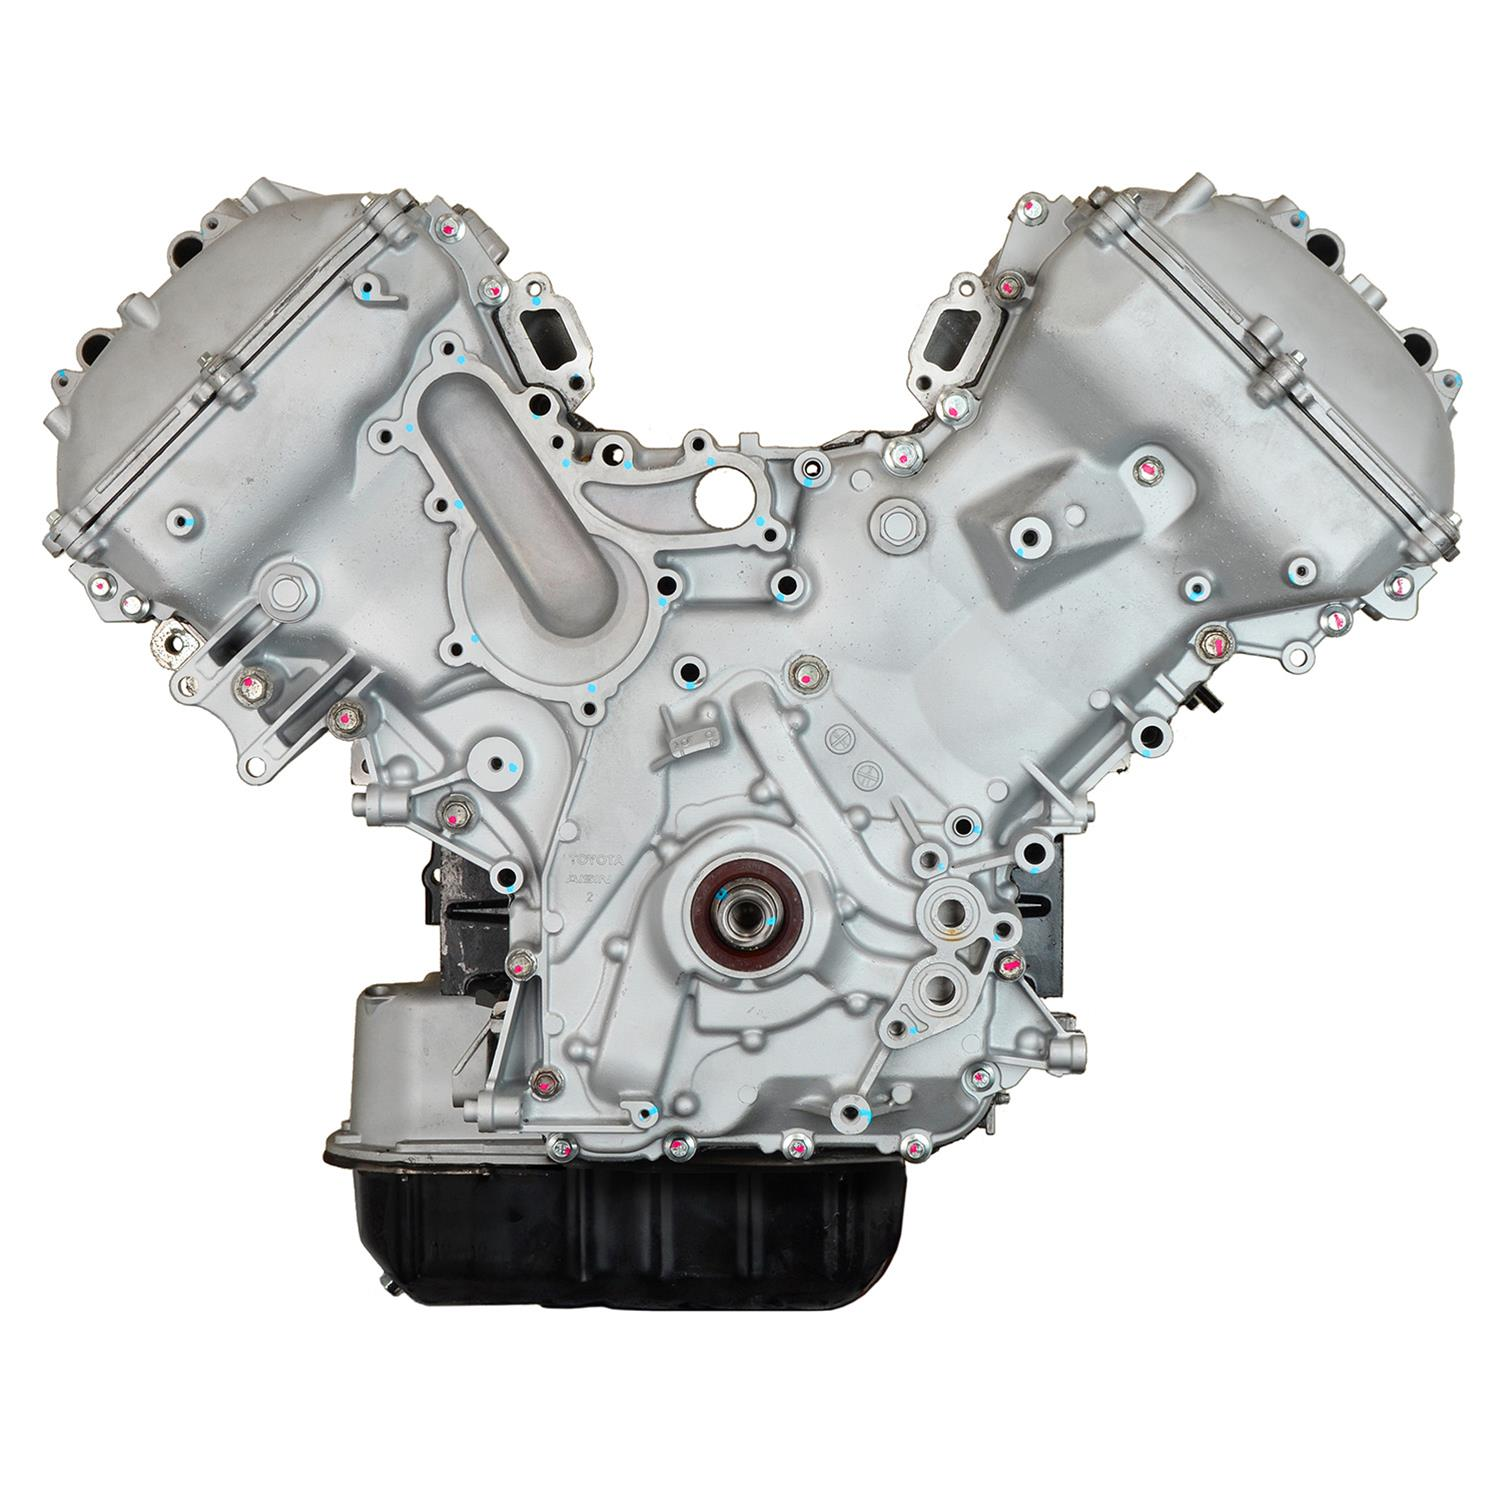 VEGE Remanufactured Long Block Crate Engines 865A